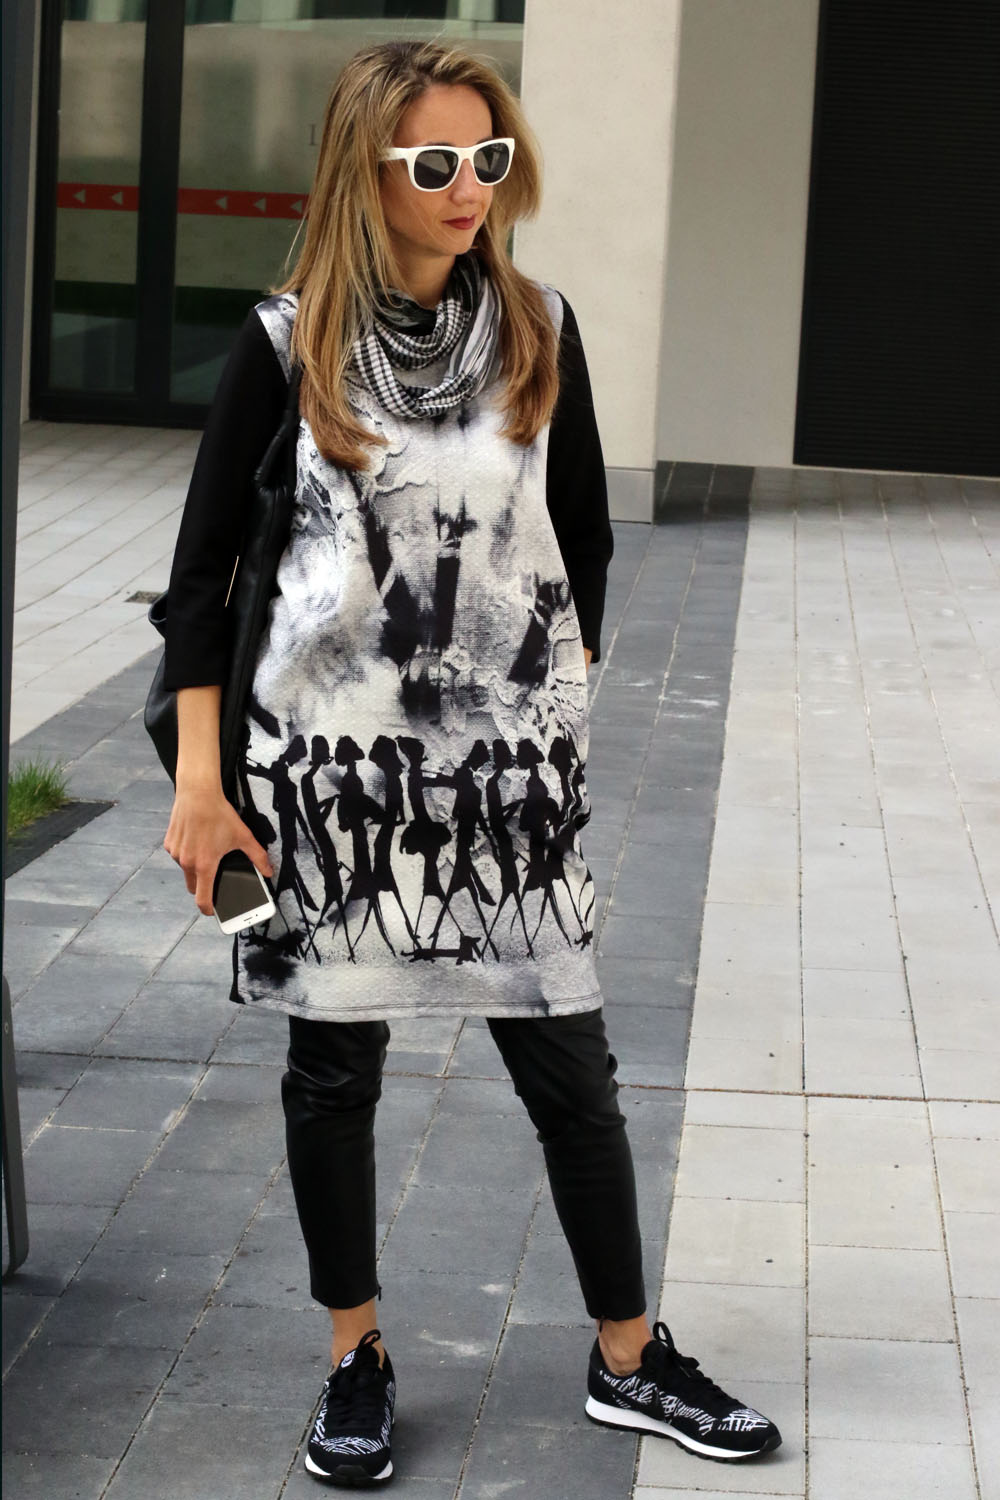 Borislava ColourClub-Fashionblog outfit dress over pants black and white Nike shoes Furla bag